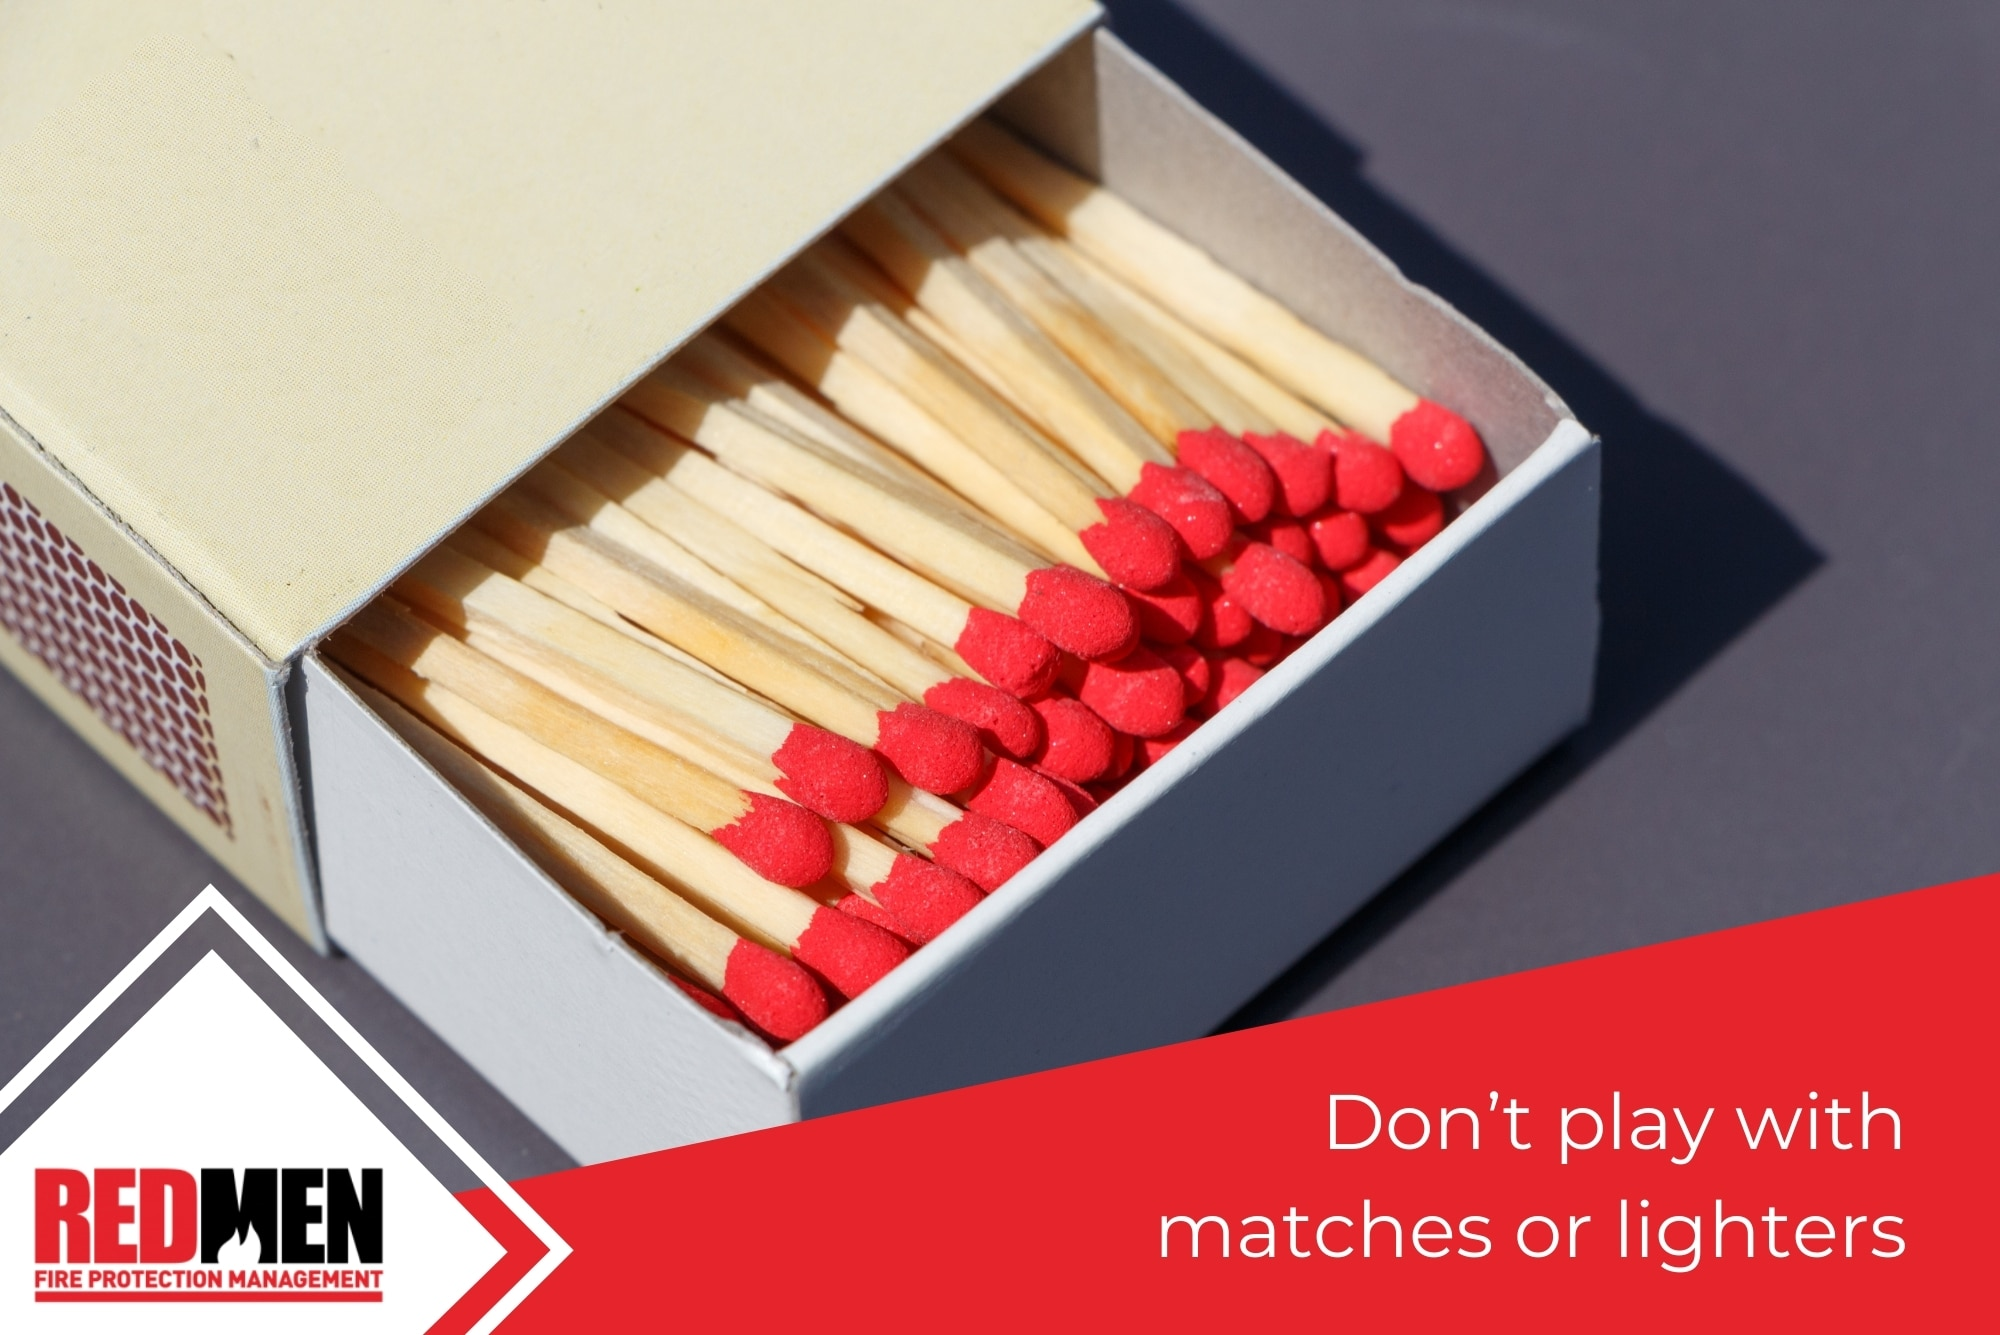 Don't play with matches or lighters